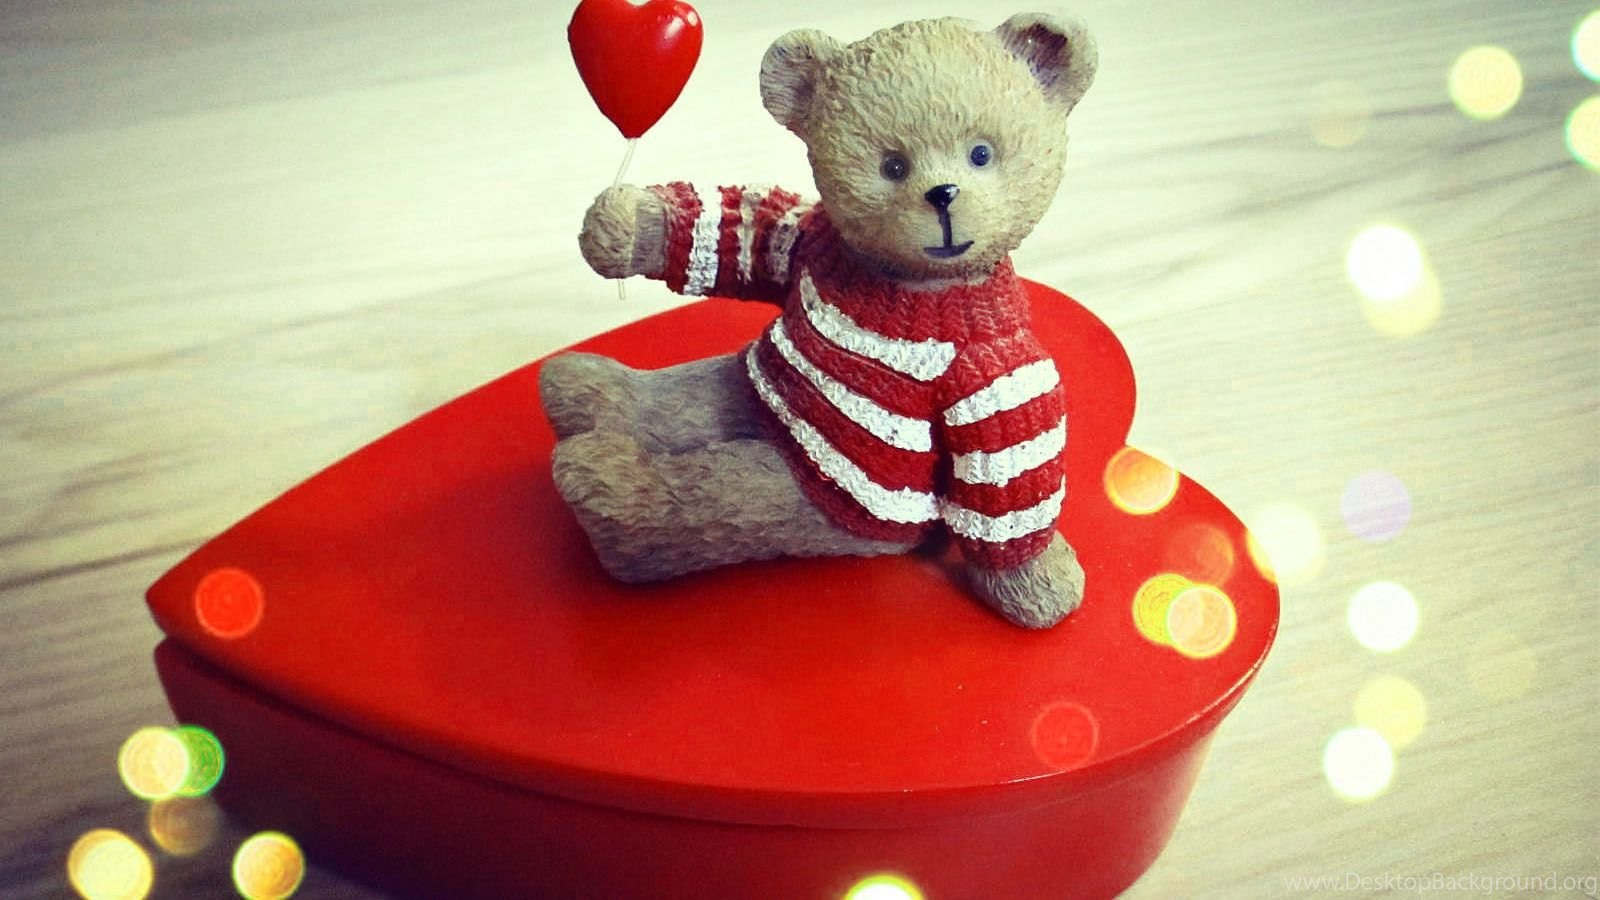 i love you teddy bear wallpapers hd images new desktop background